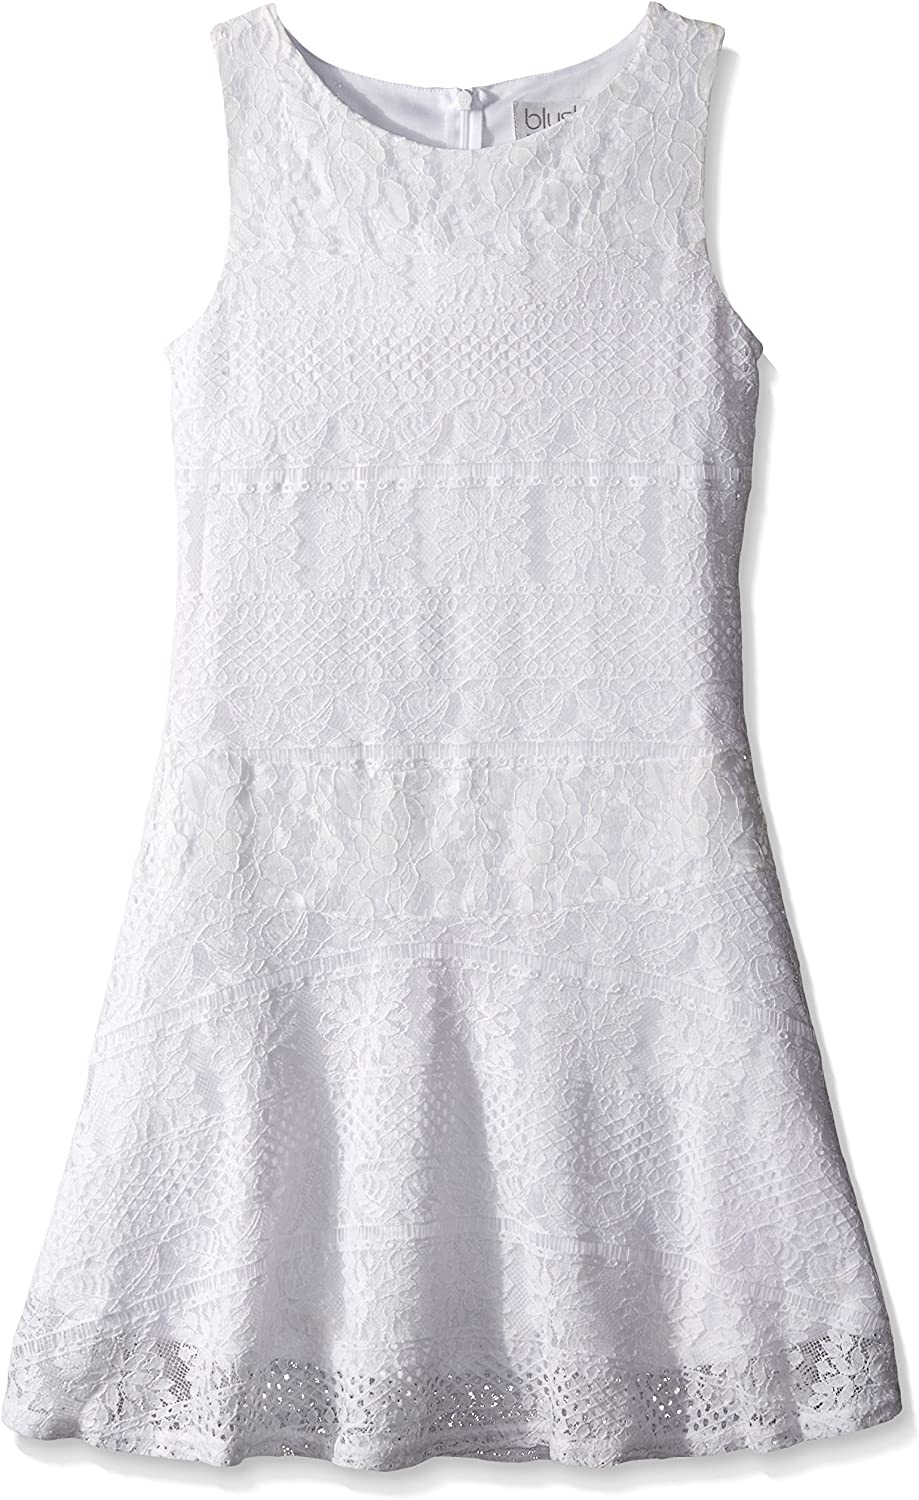 Blush by Us Angels Girls' Striped Crochet Lace Dress Sleeveless with Full Skirt